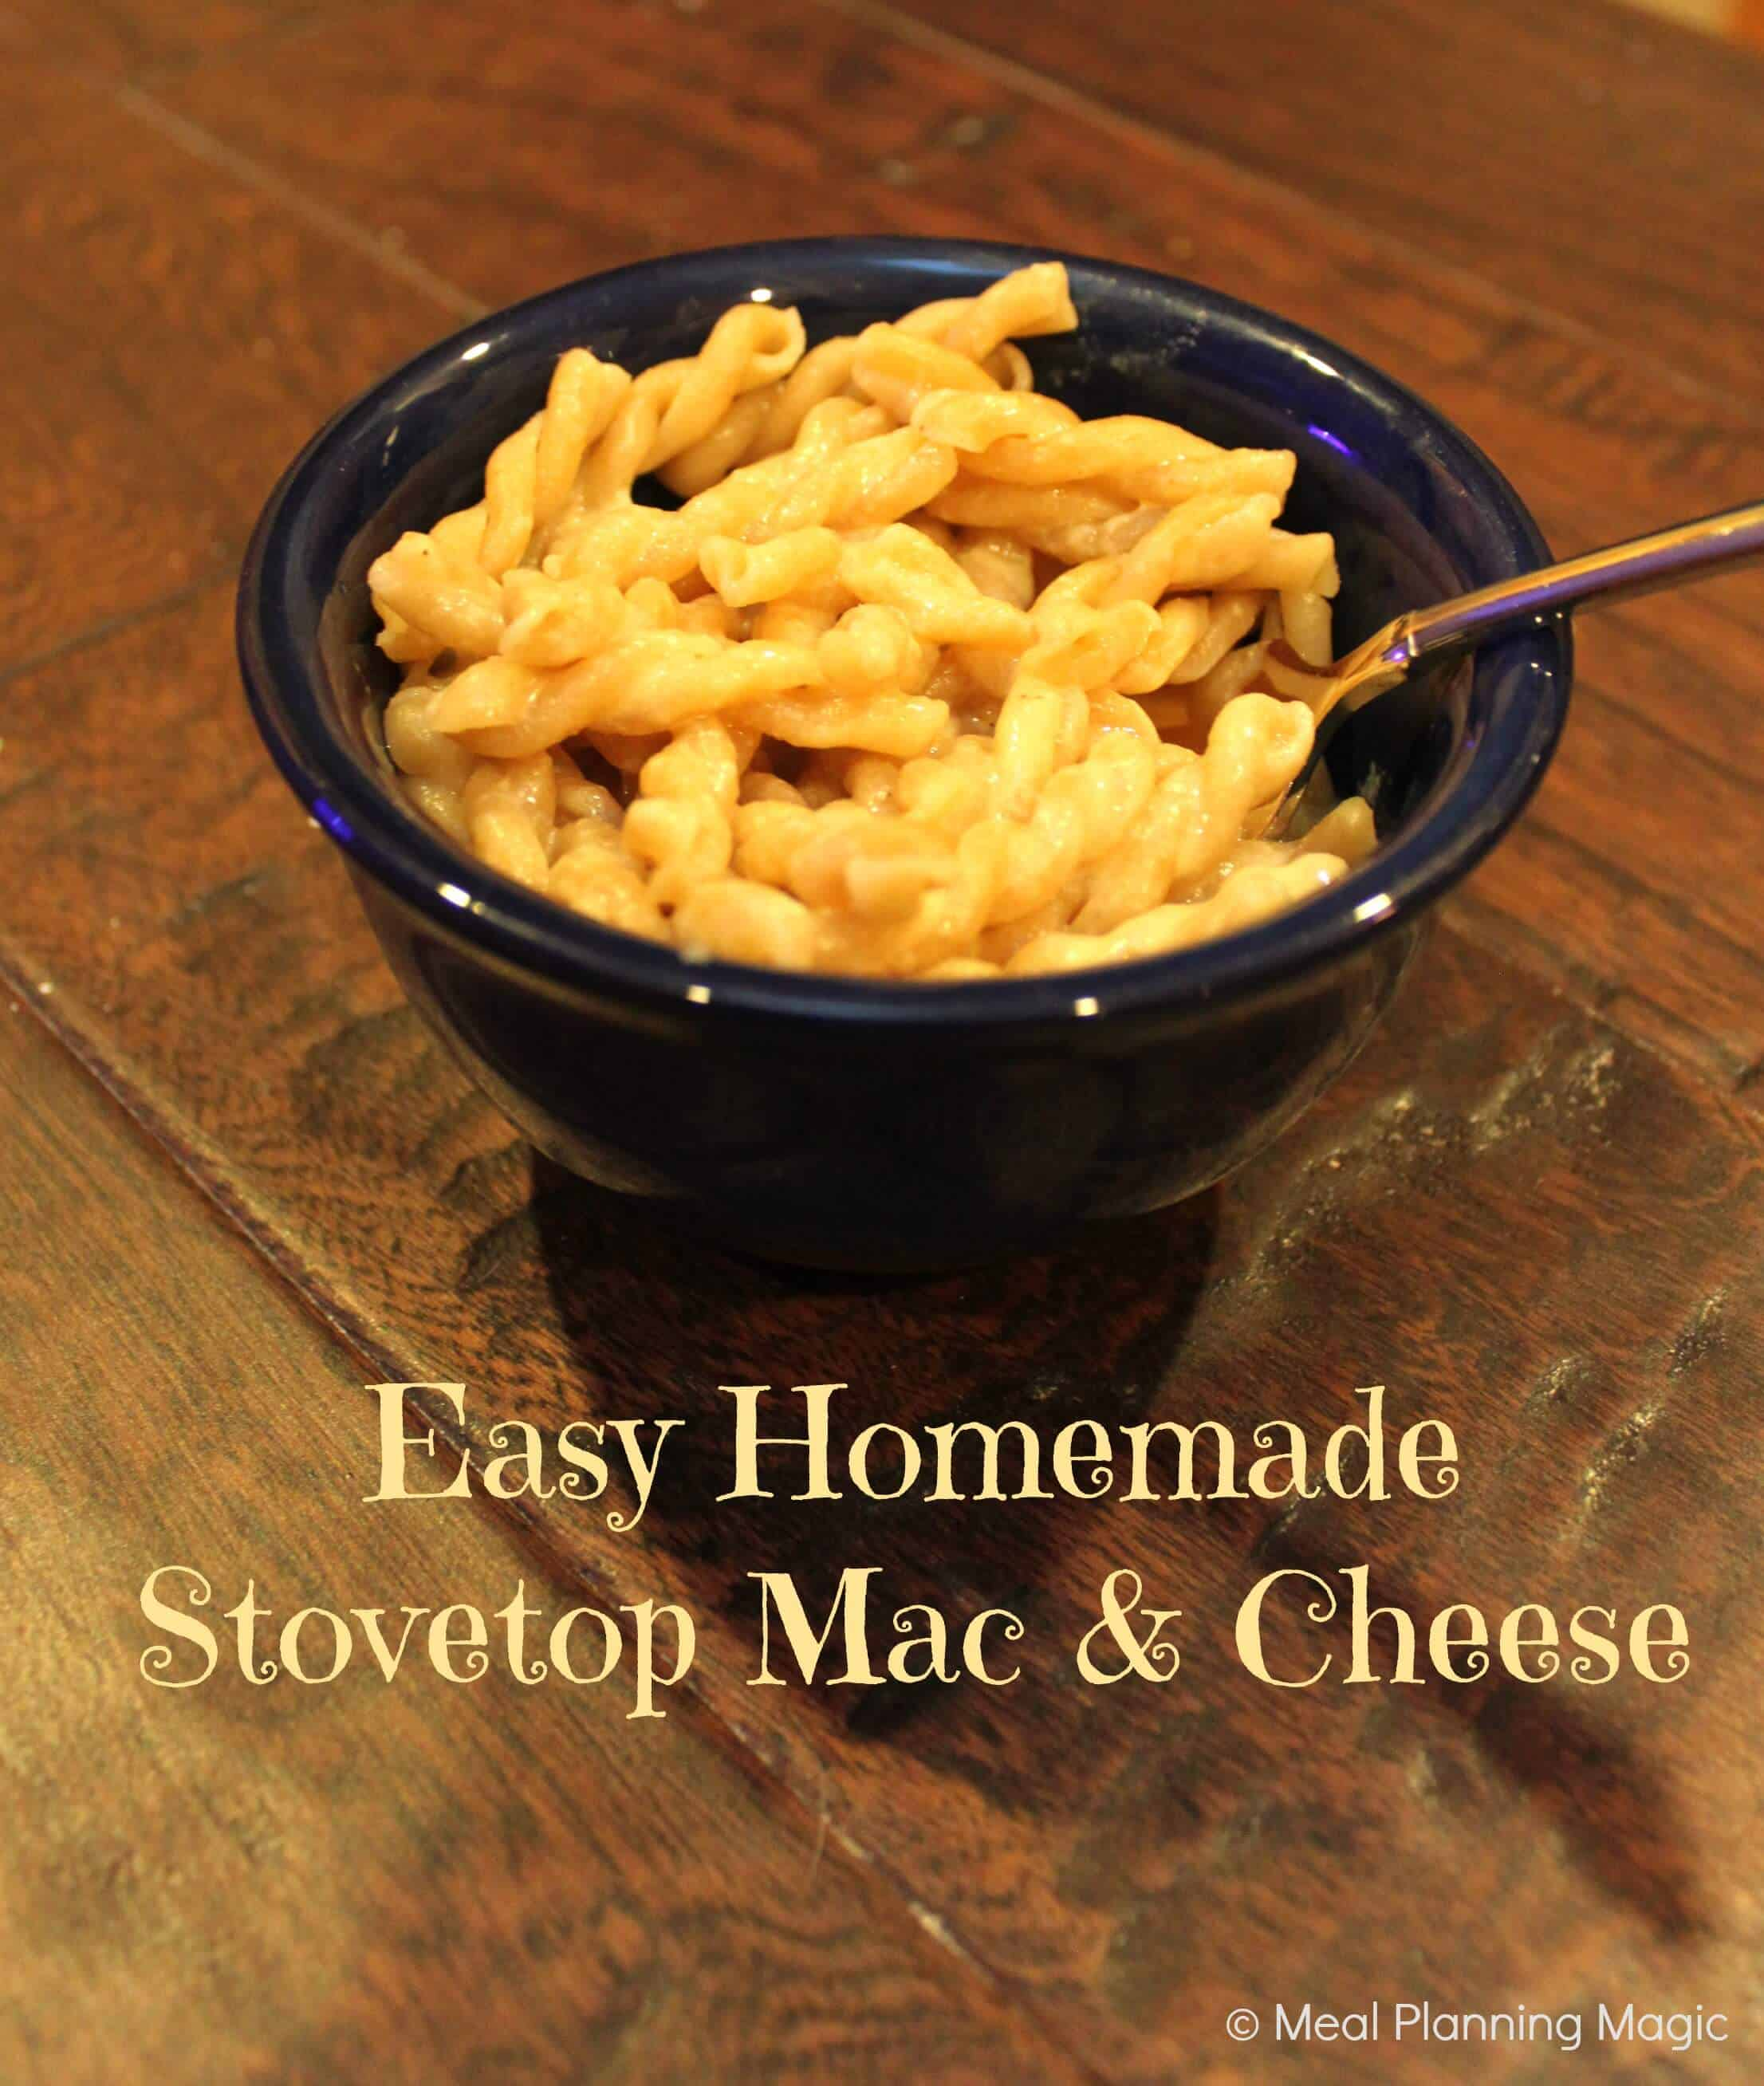 Easy Homemade Stovetop Mac & Cheese Recipe